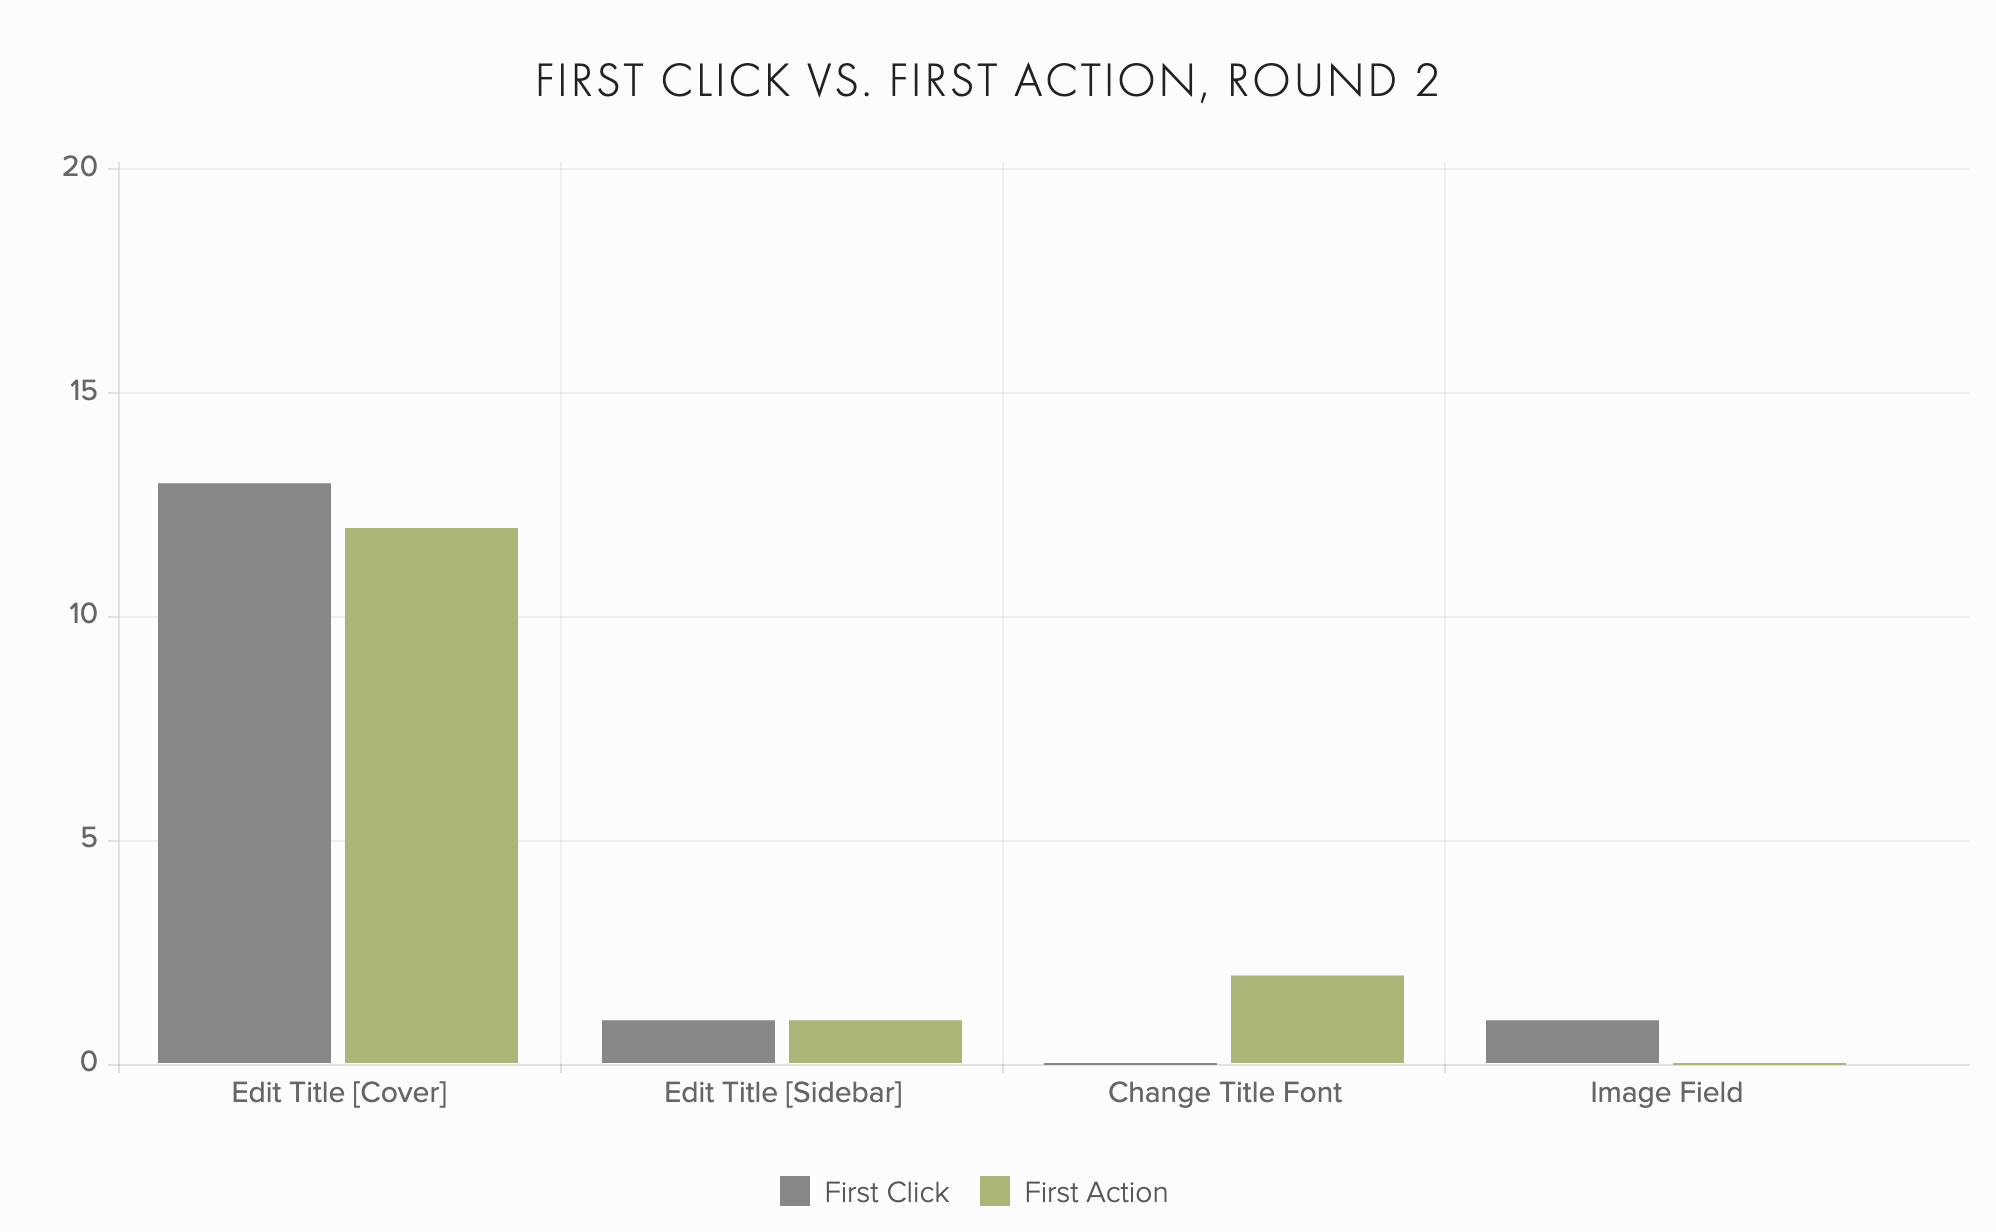 A chart showing first click vs. first action results, comparing the two rounds of testing